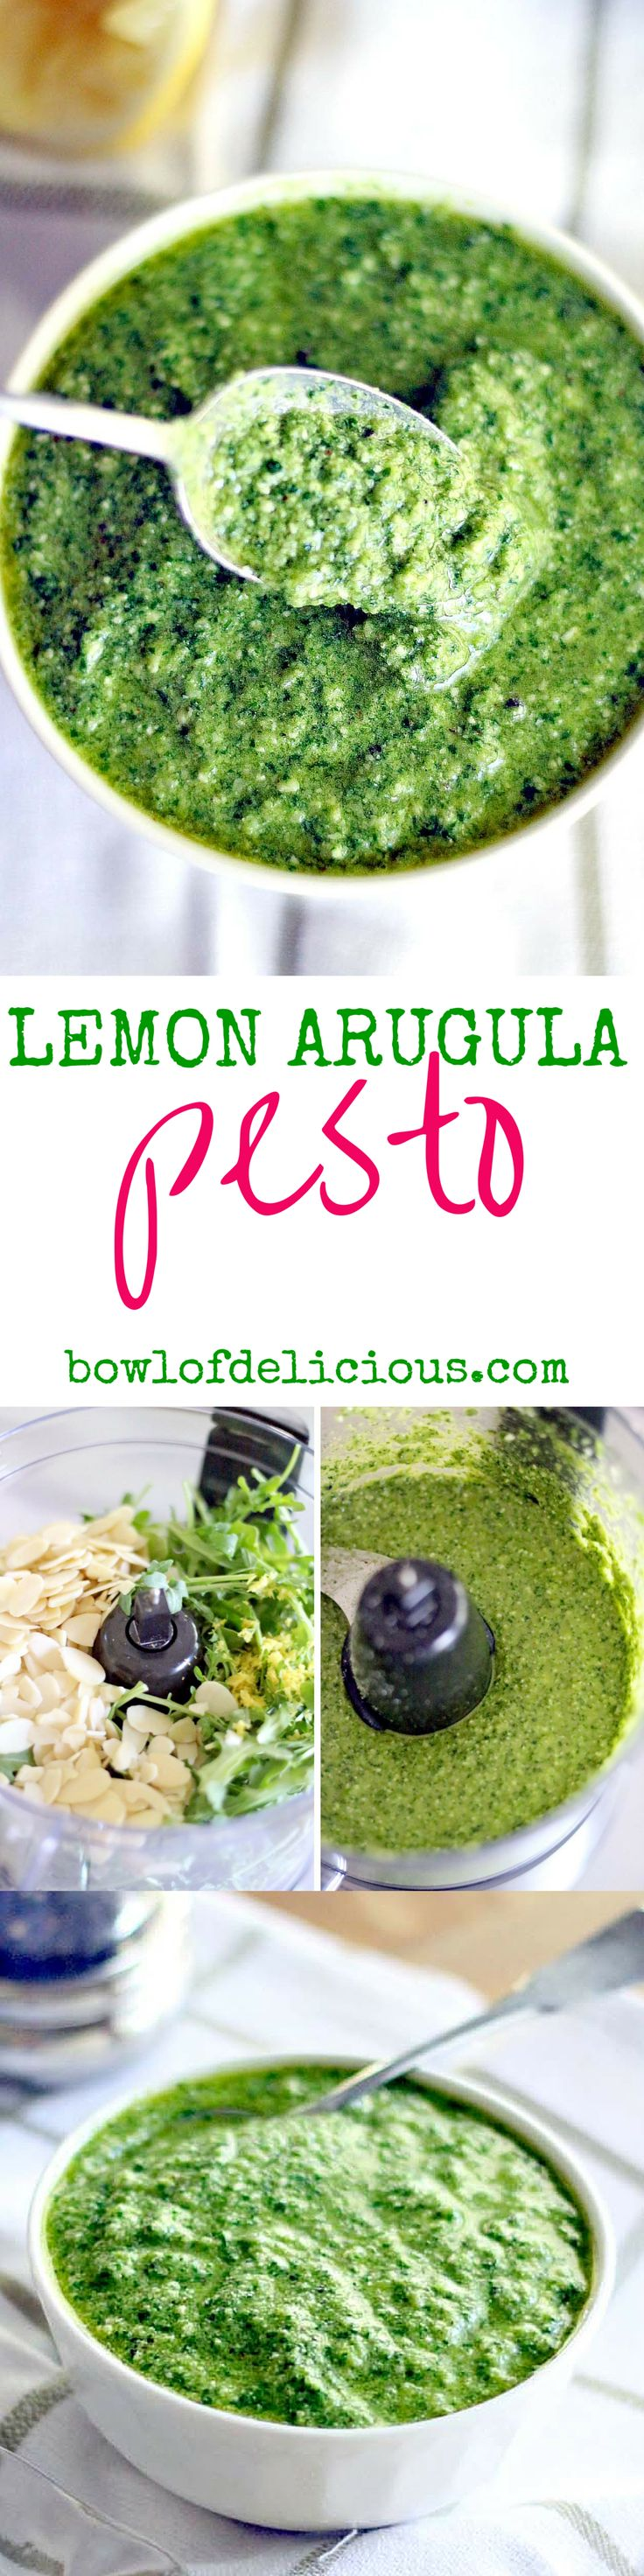 This Lemon Arugula Pesto comes together in five minutes! It's healthy, peppery, bright, fresh, and has a little bit of a kick to it! Vegan, vegetarian, real food, whole, clean, and unprocessed. YUM.